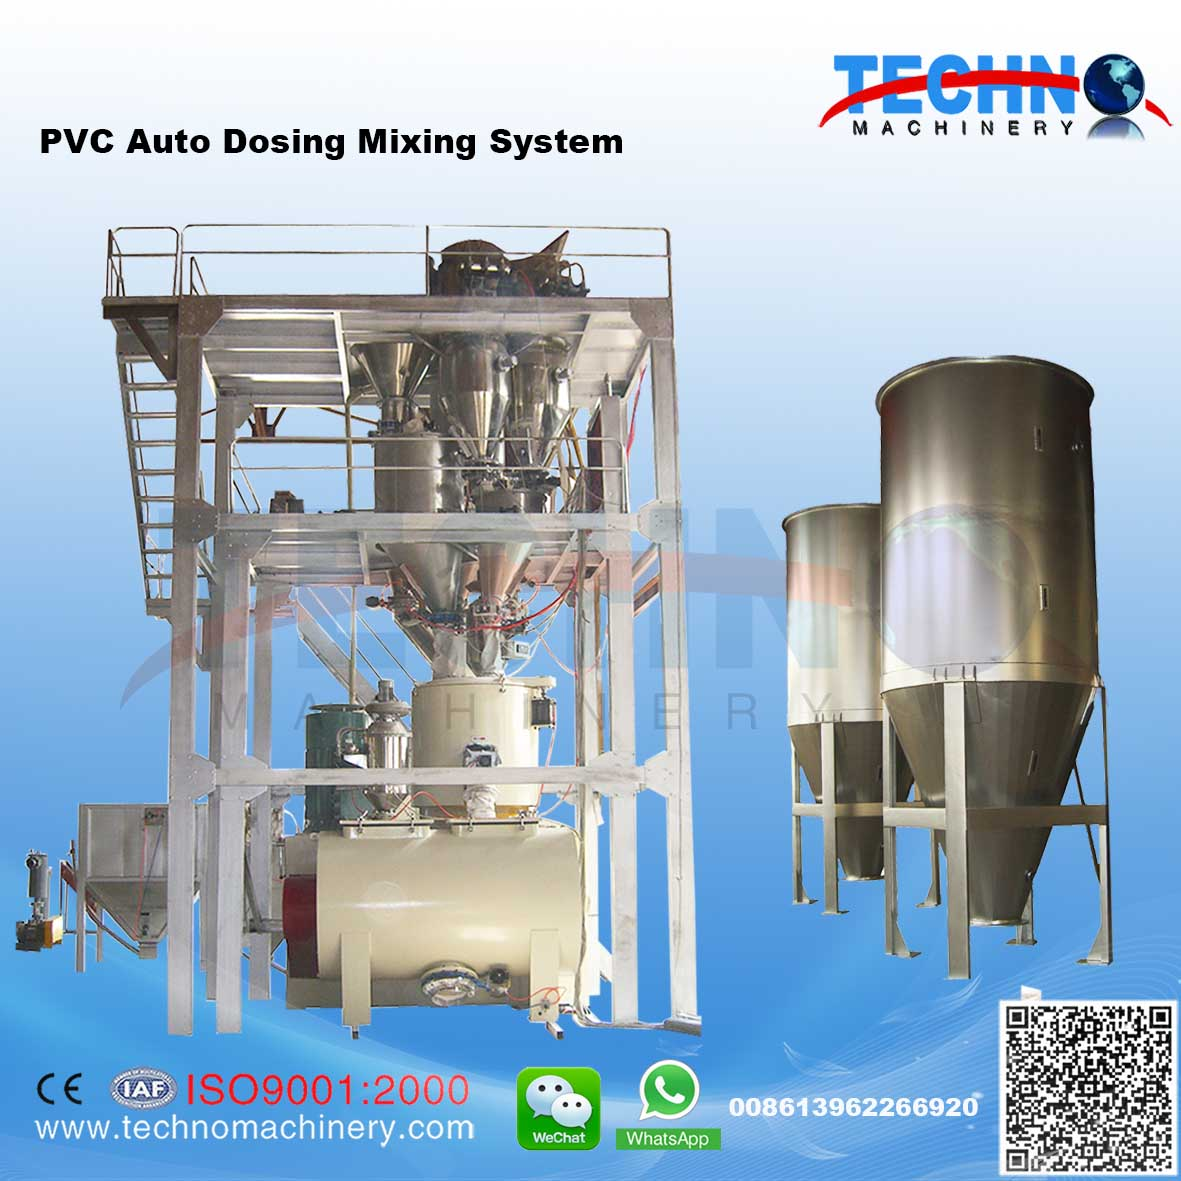 Pneumatic PVC Bulk Material Handling System/PVC Compounding System